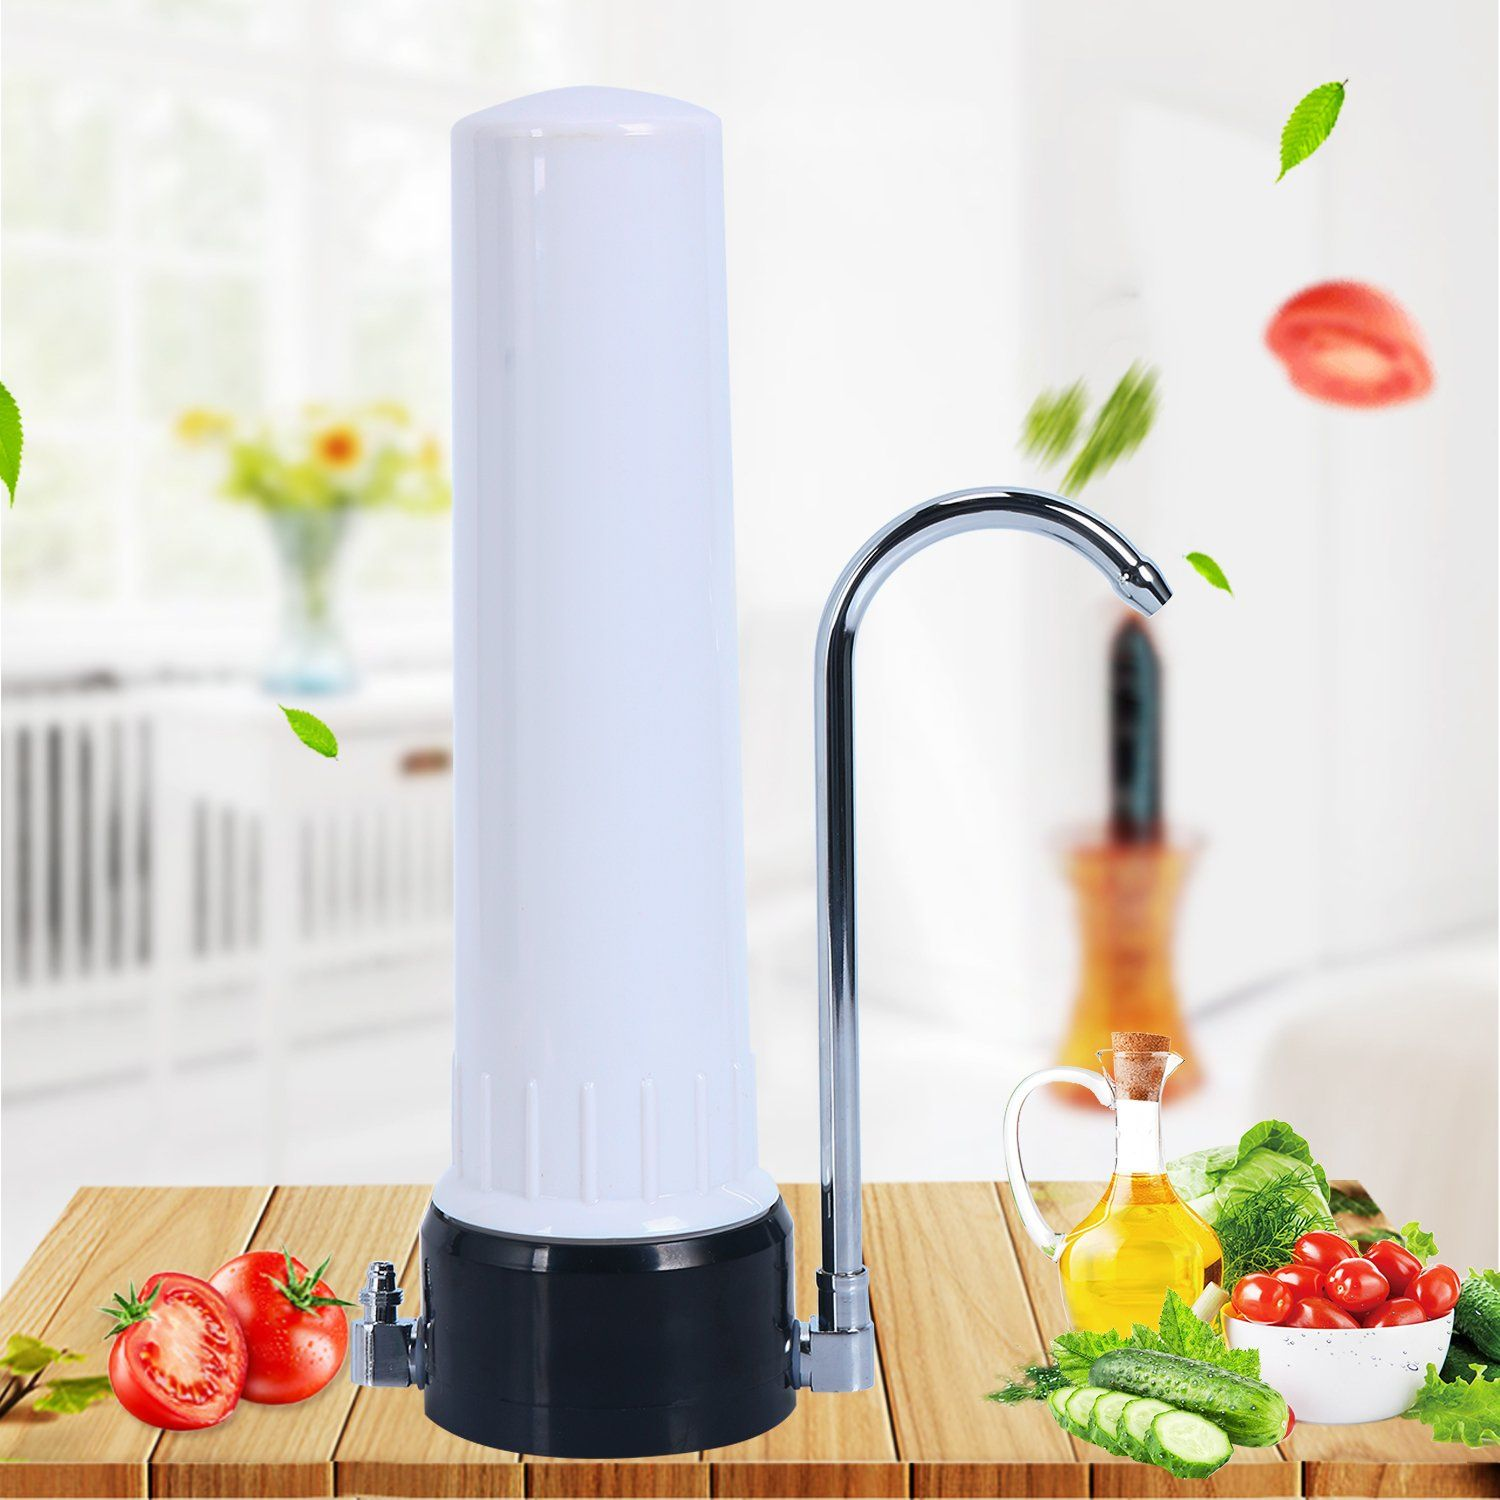 Homend Countertop Drinking Water Filtration System Countertop Water Purifier Filter Drinking Water Clean Purifier Drinking Water Kitchen Faucet Water Purifier